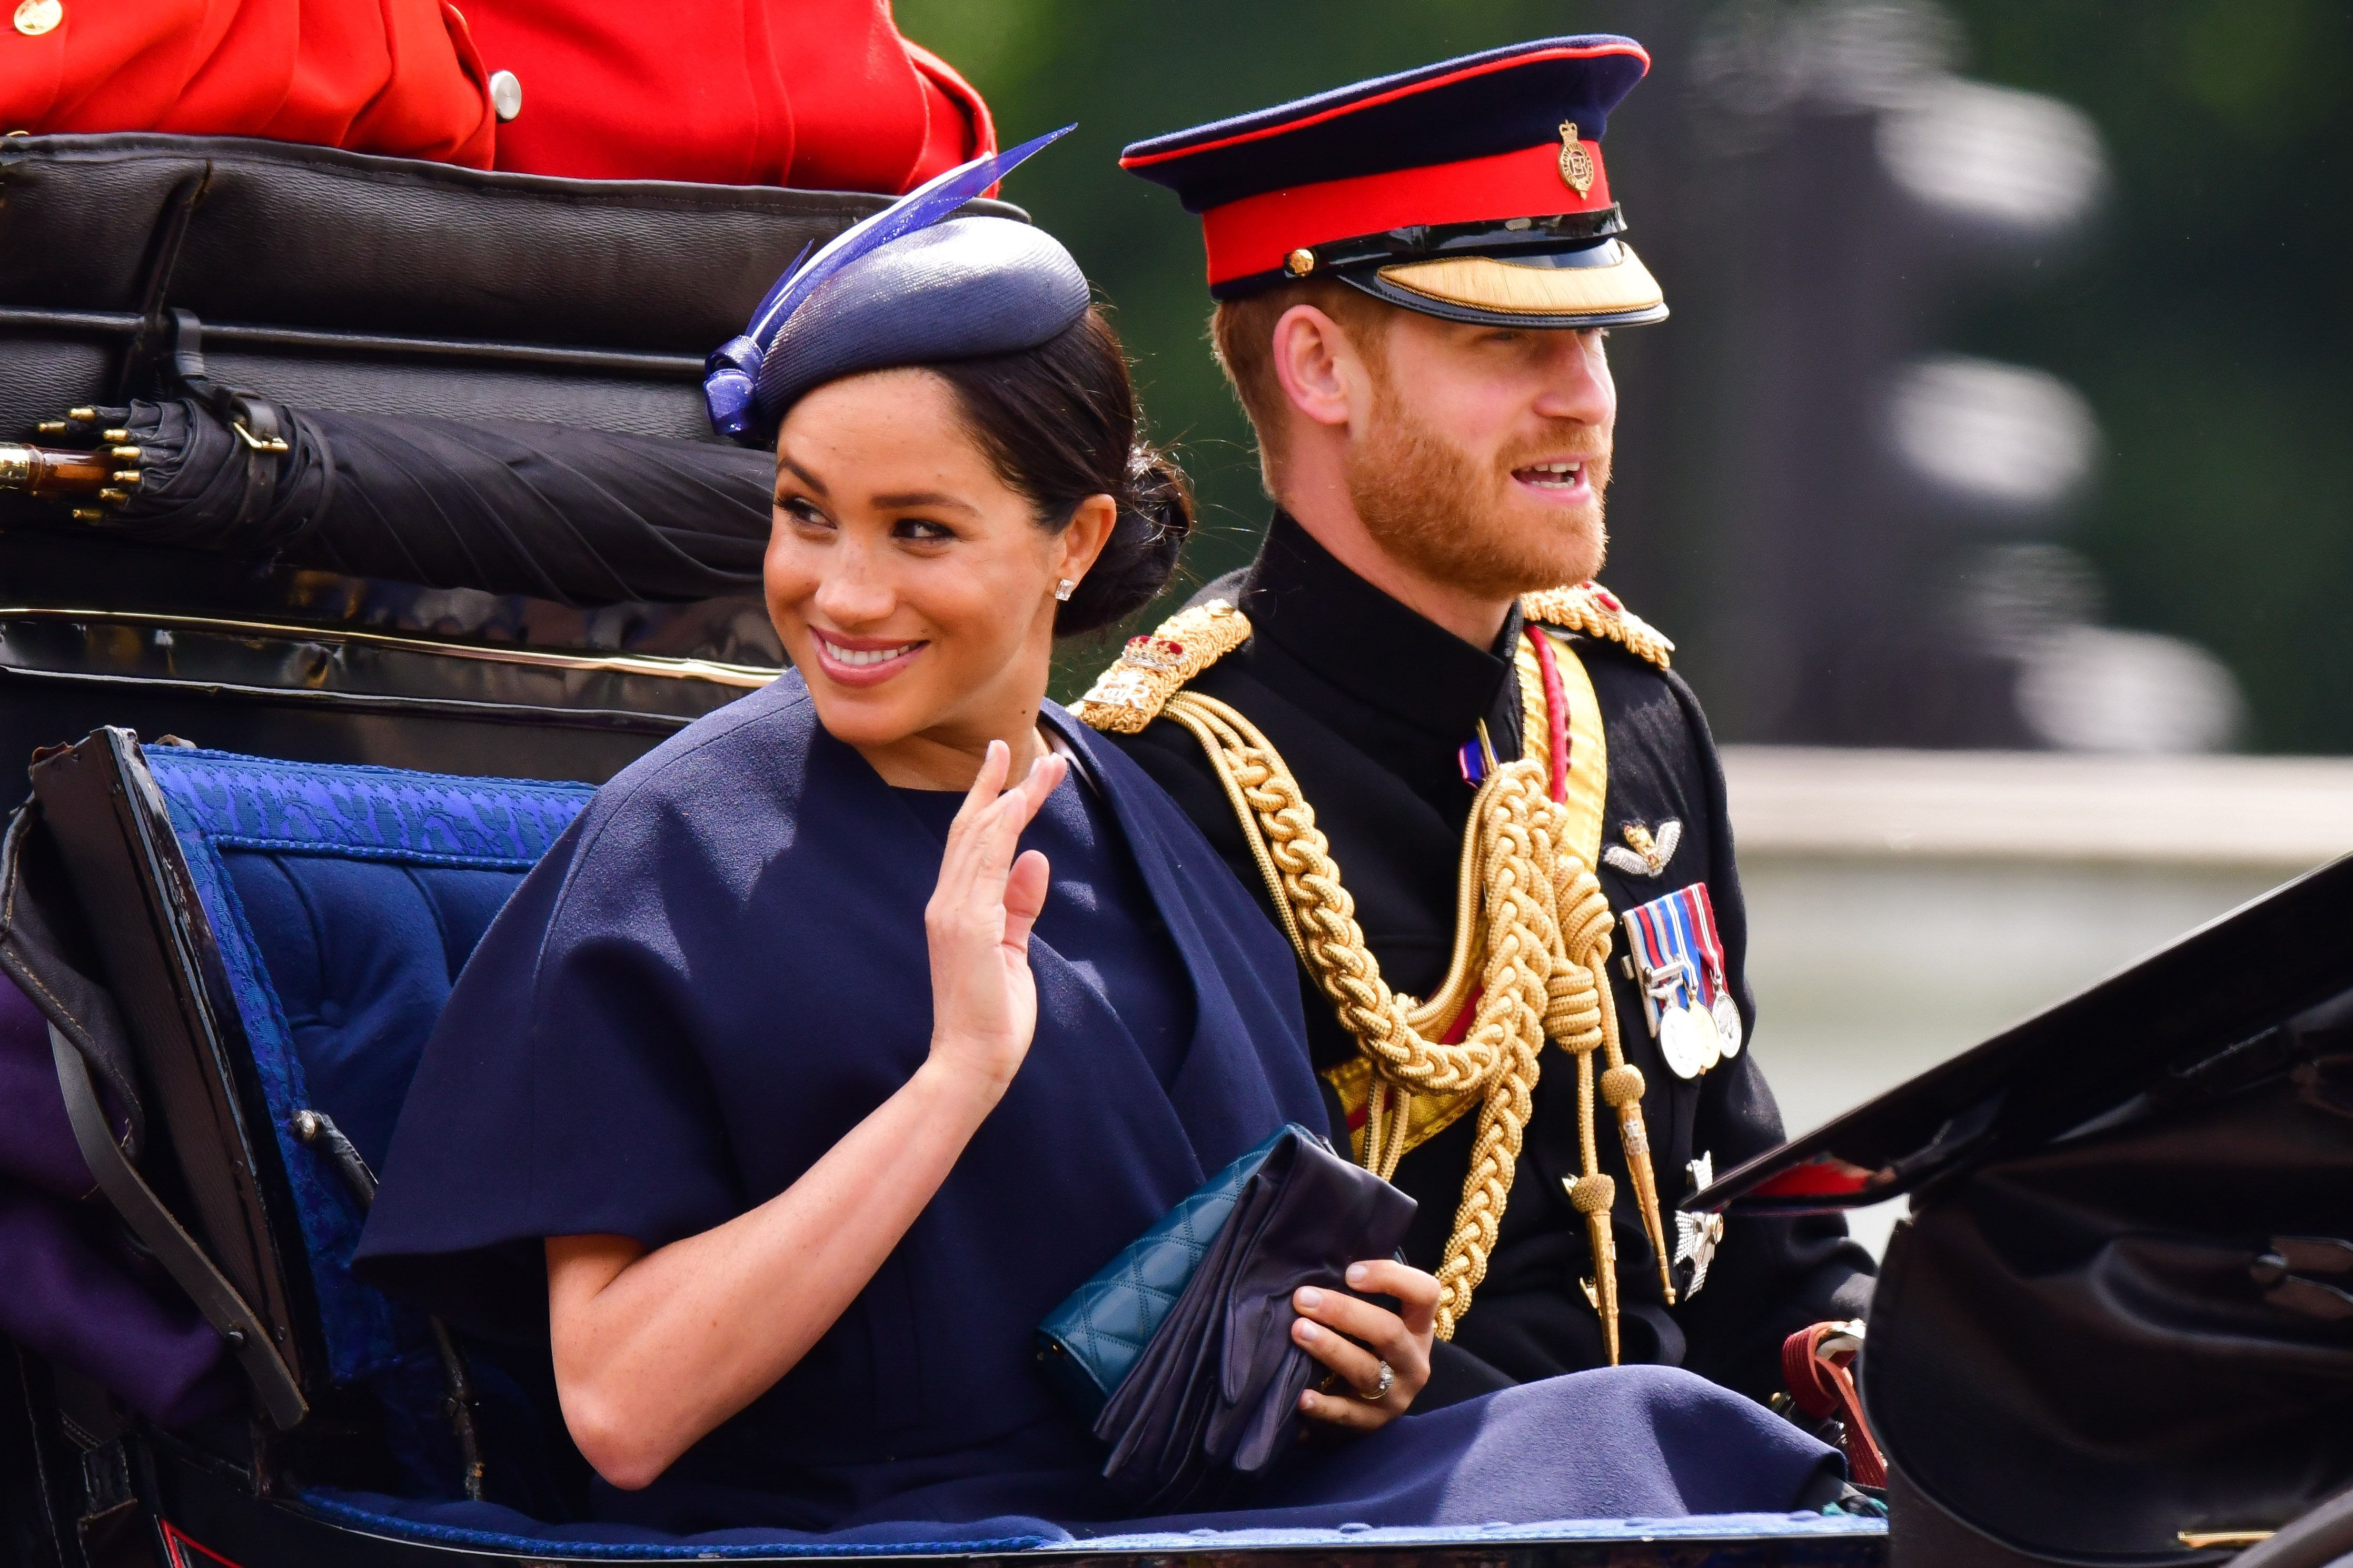 Prince Harry and Meghan Markle attend Trooping the Color in June 2019 | Photo: Getty Images